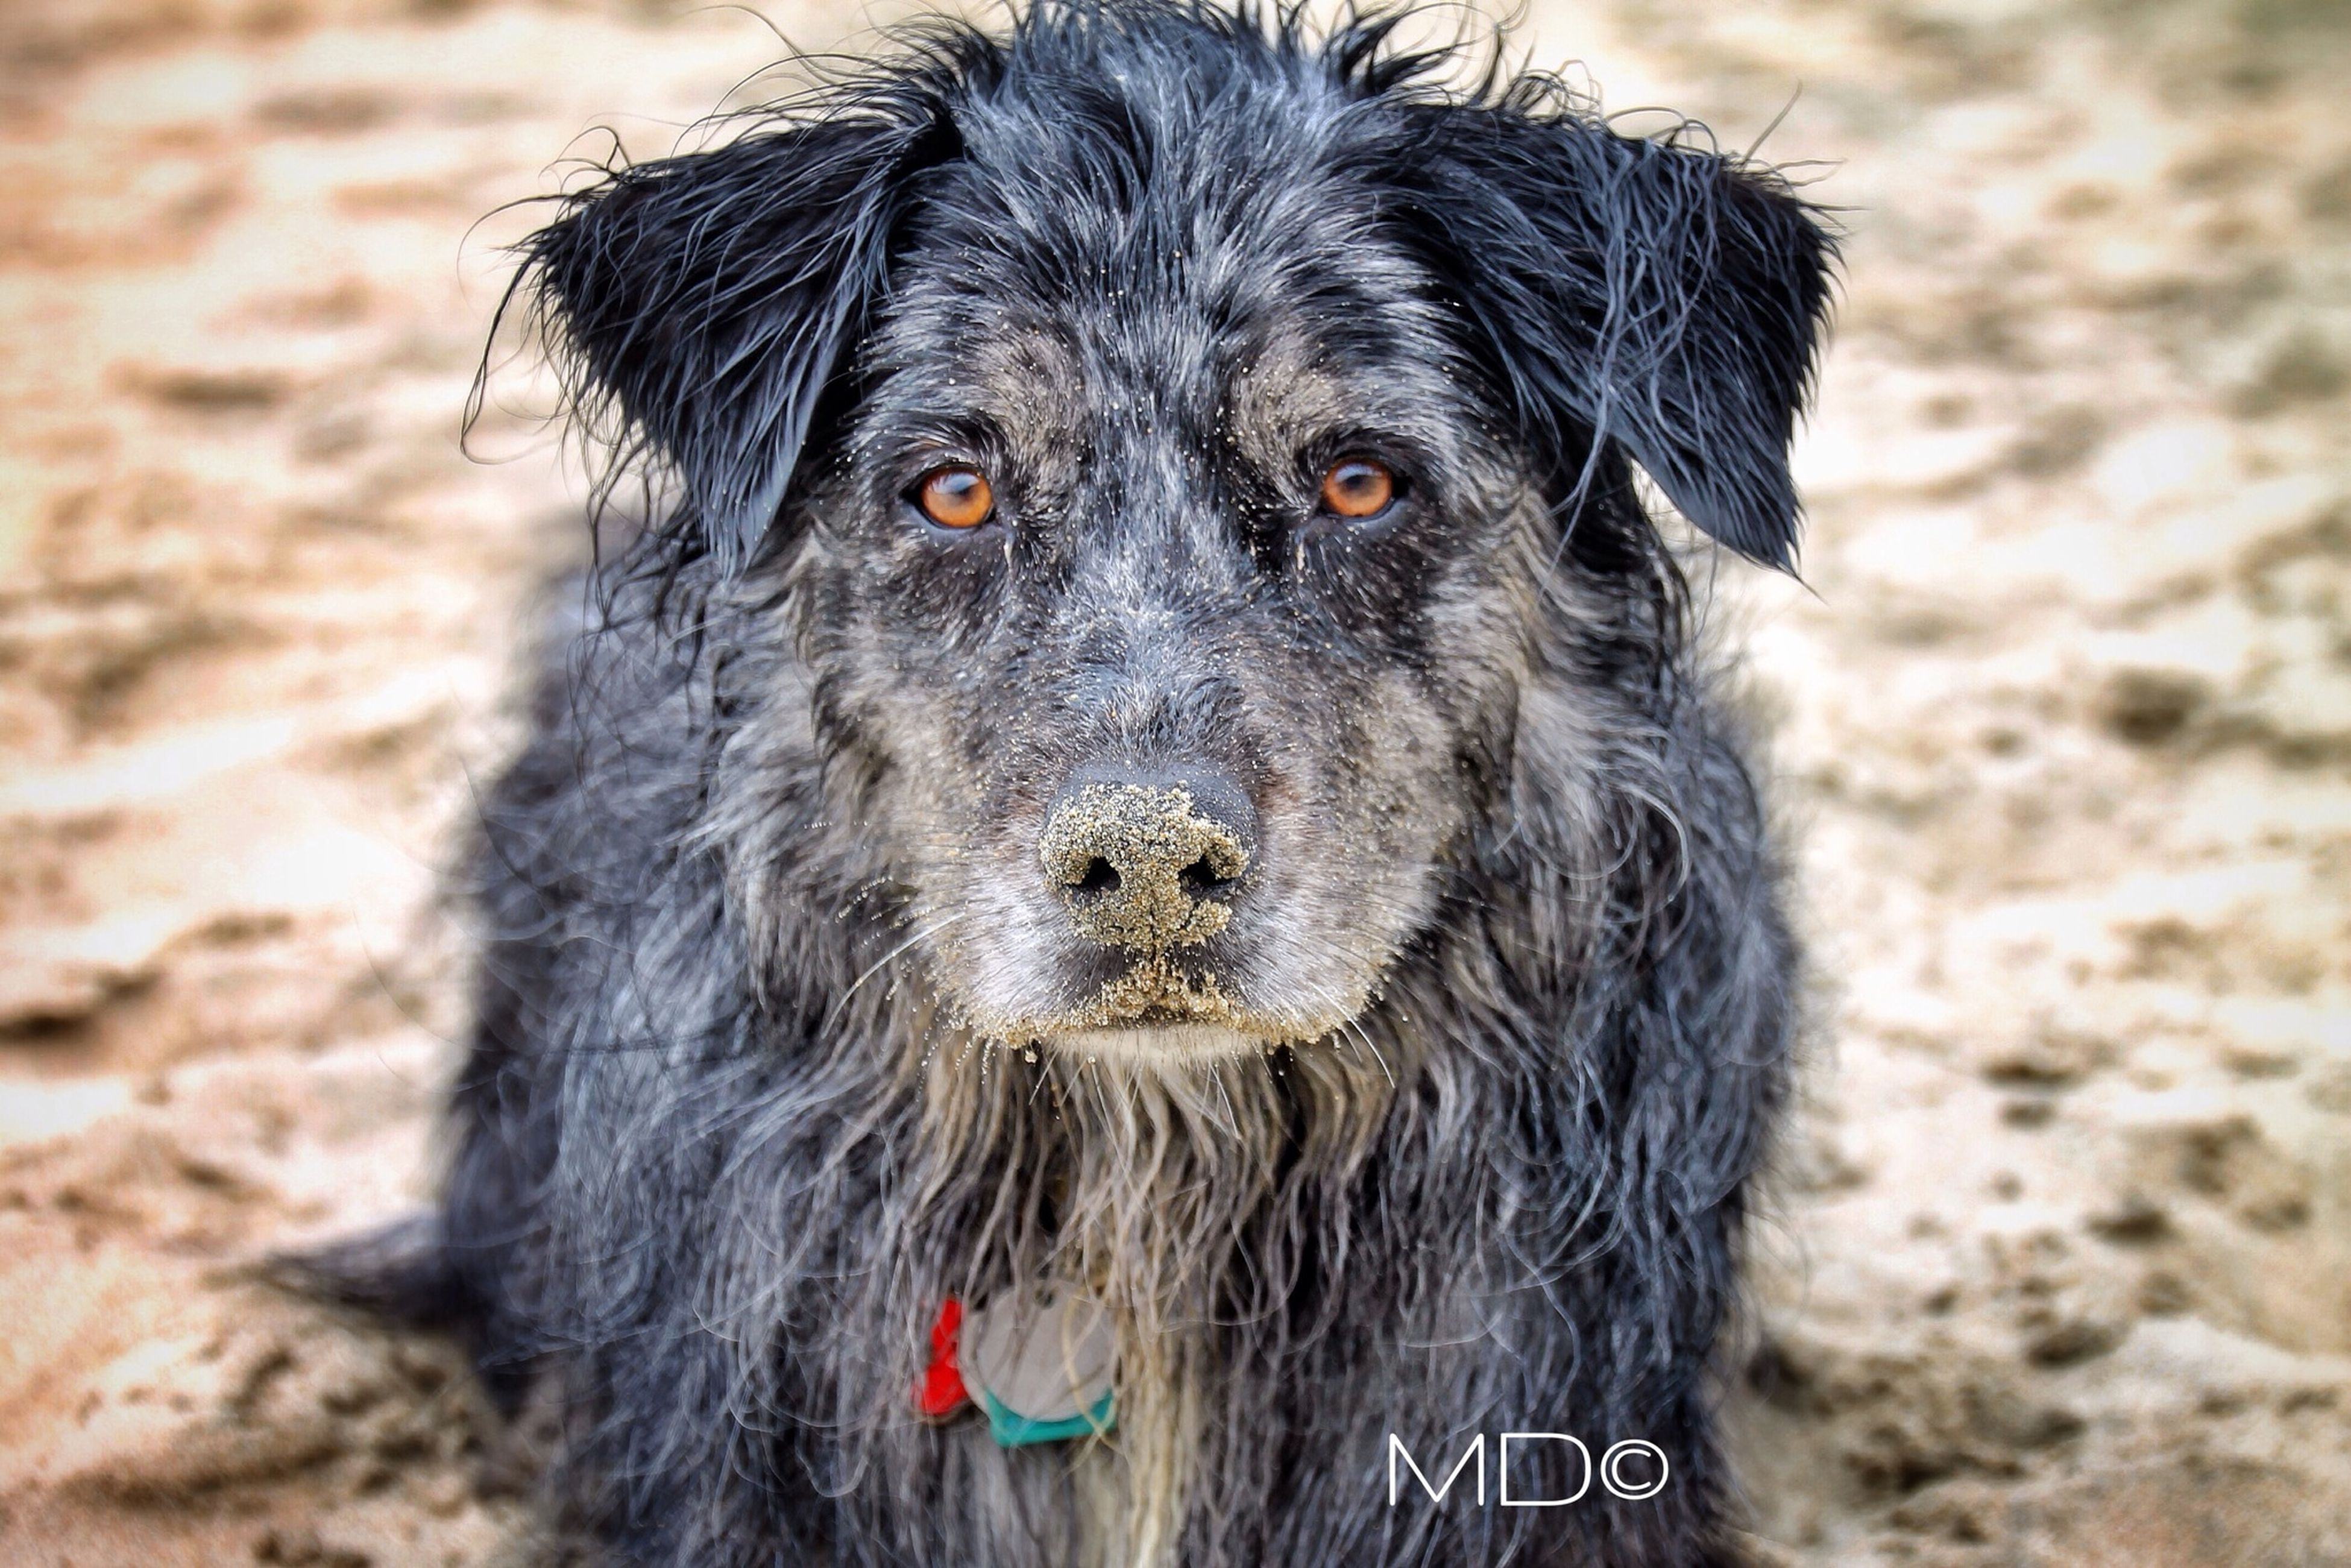 animal themes, one animal, domestic animals, mammal, dog, pets, focus on foreground, portrait, looking at camera, close-up, animal hair, black color, animal head, wildlife, zoology, no people, animals in the wild, field, red, outdoors